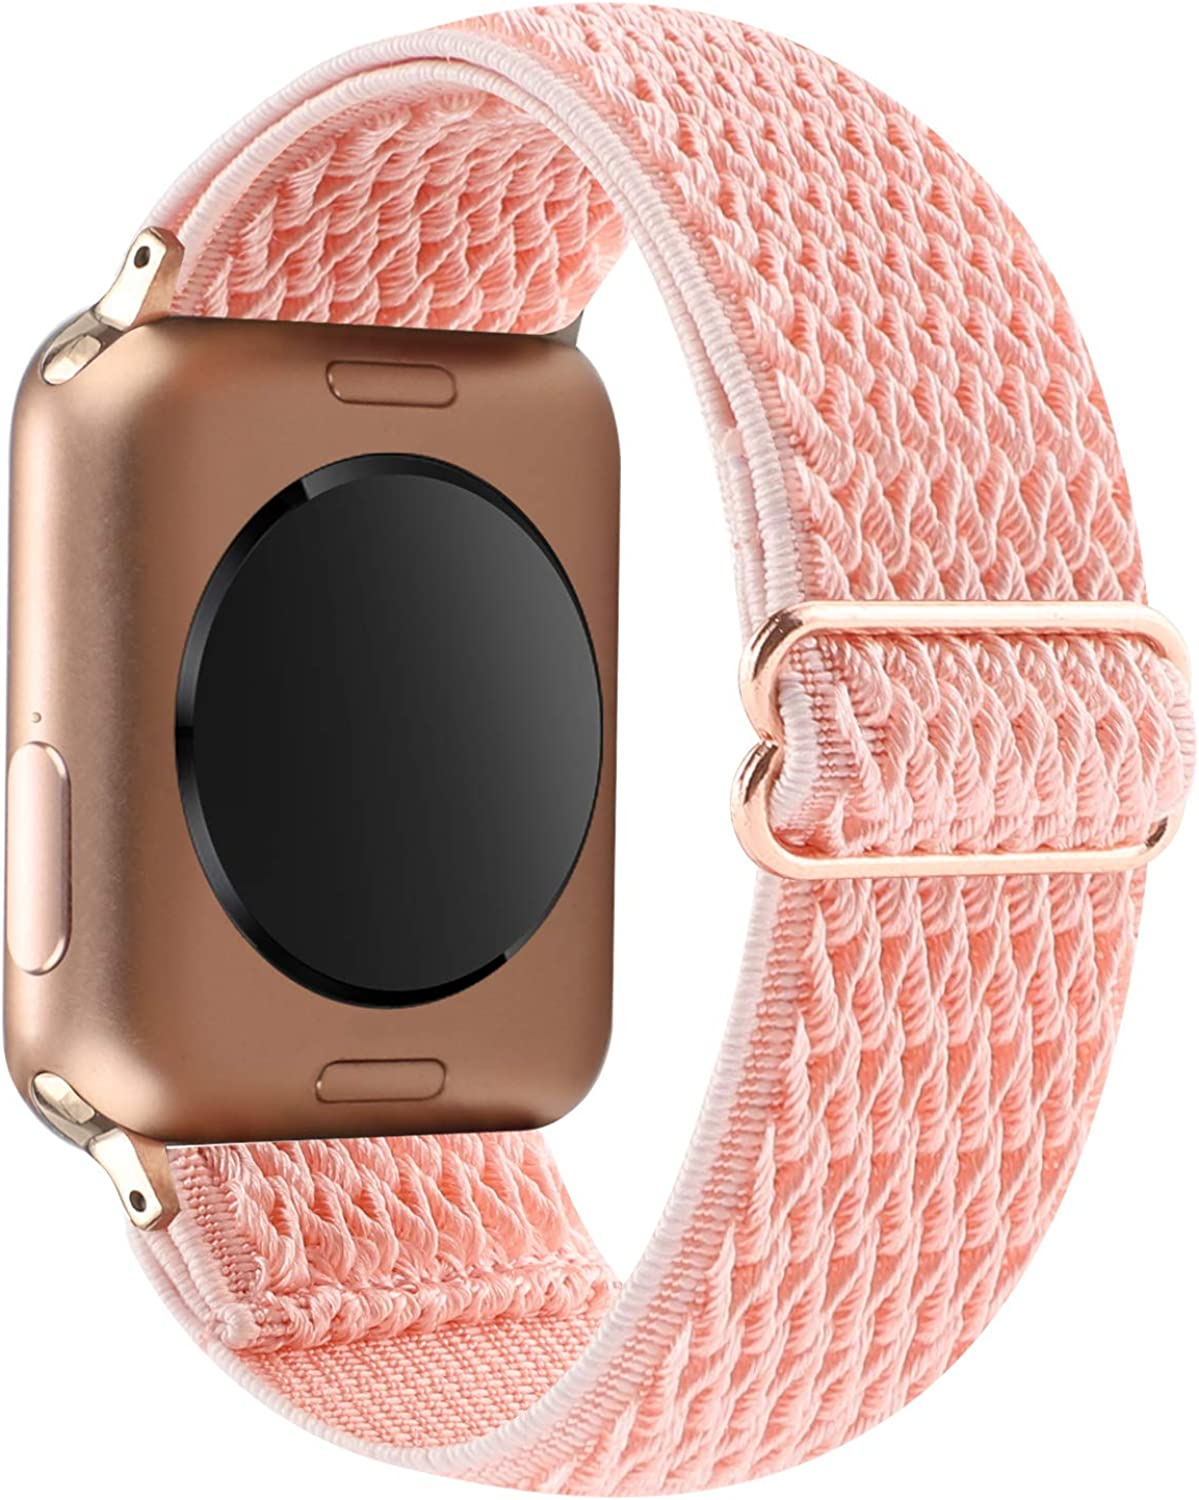 YOSWAN Stretchy Solo Loop Strap Compatible with Apple Watch Bands 38mm 40mm, Adjustable Soft Nylon Stretch Sport Elastics Women Men Wristband for iWatch Series 6/5/4/3/2/1 SE